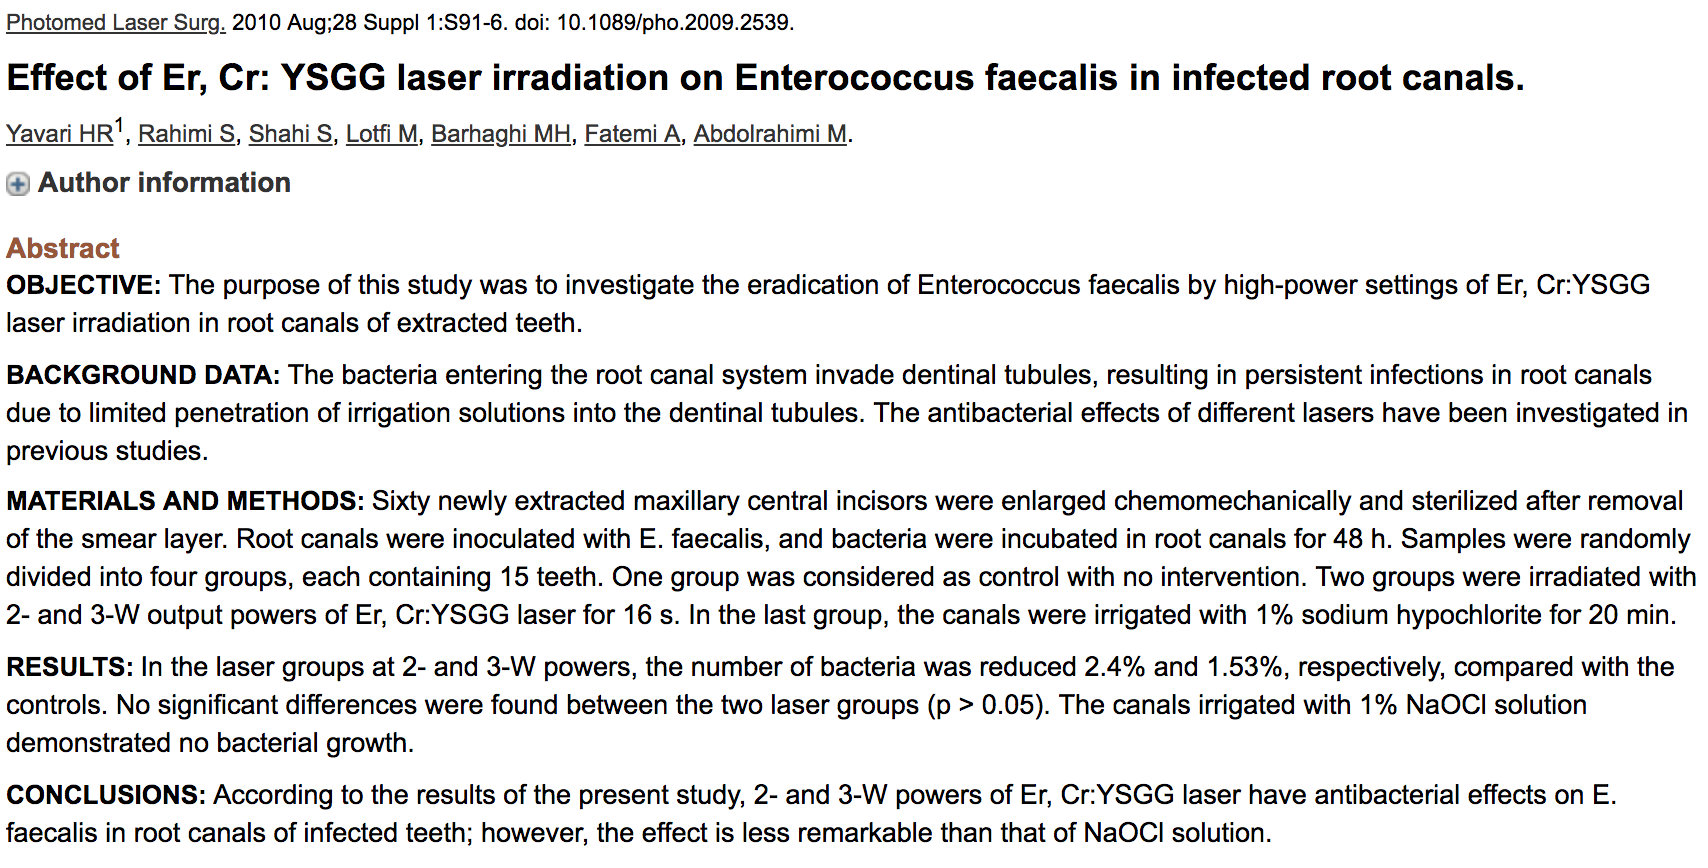 Dr. Ali Fatemi - Effect of Er, Cr: YSGG laser irradiation on Enterococcus faecalis